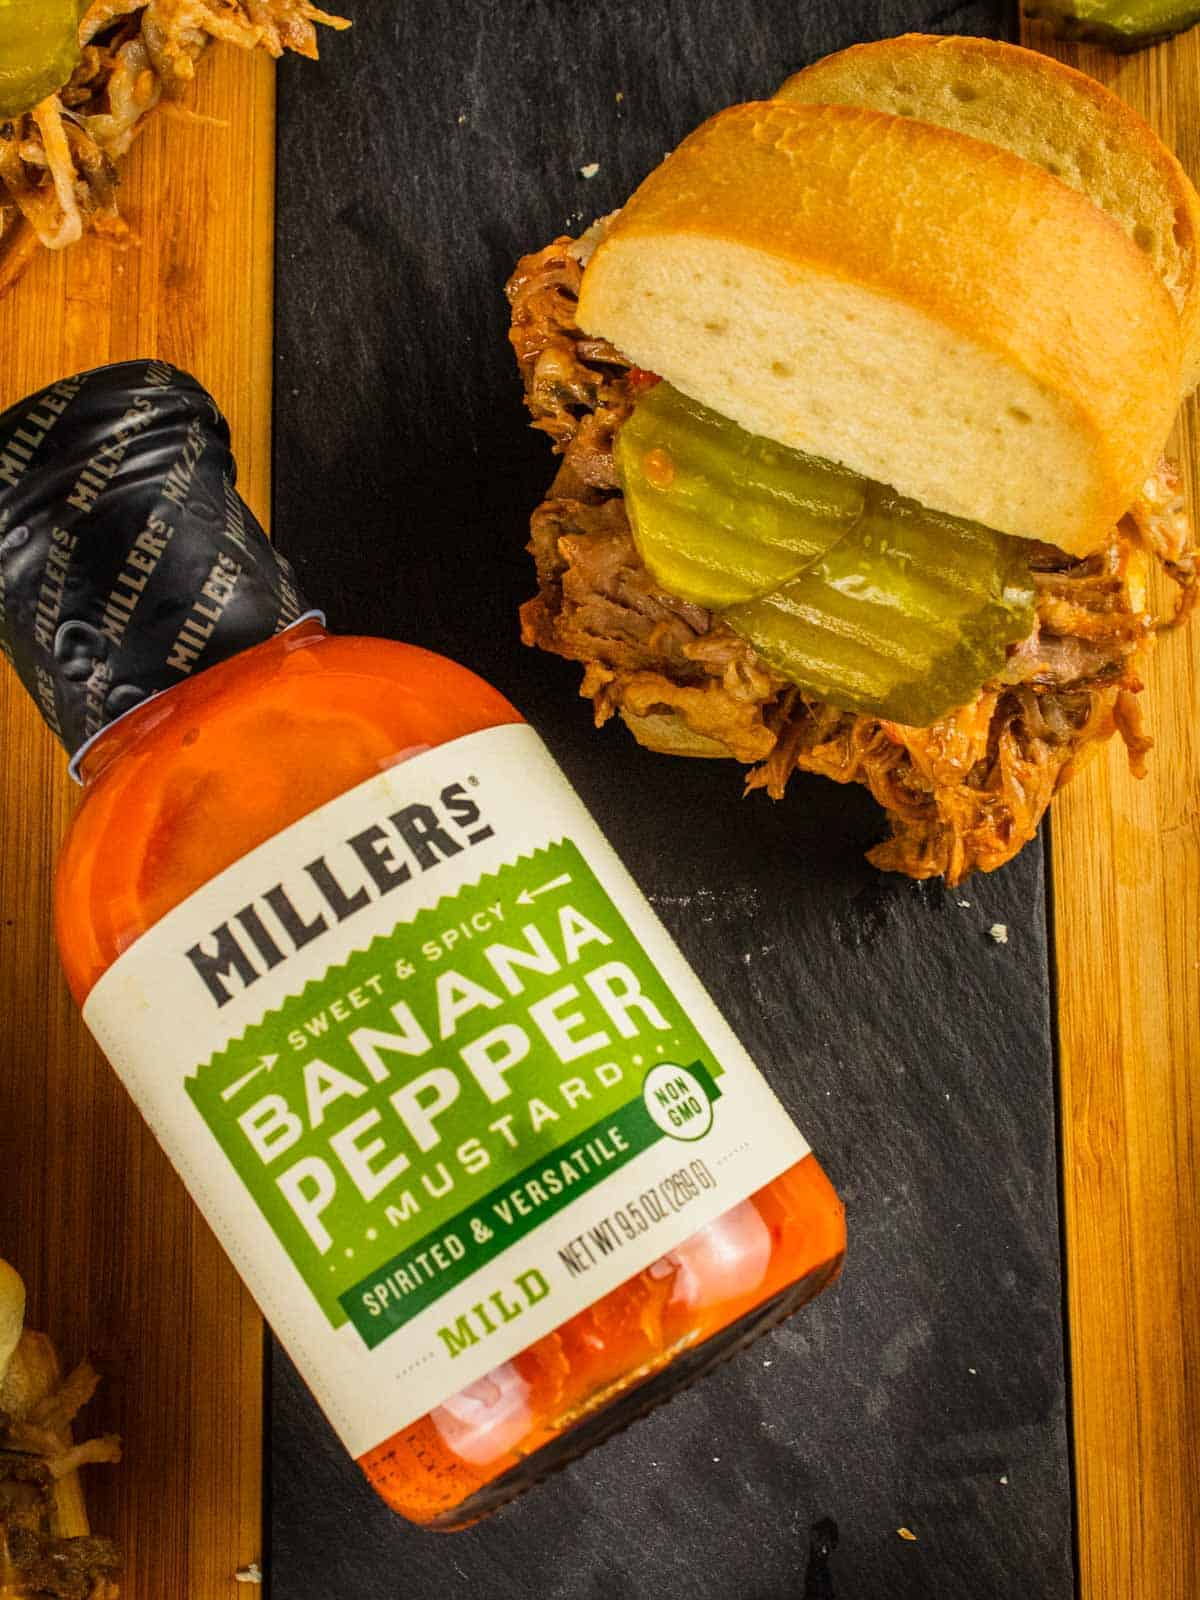 bottle of millers banana pepper mustard next to a pulled pork slider with pickles